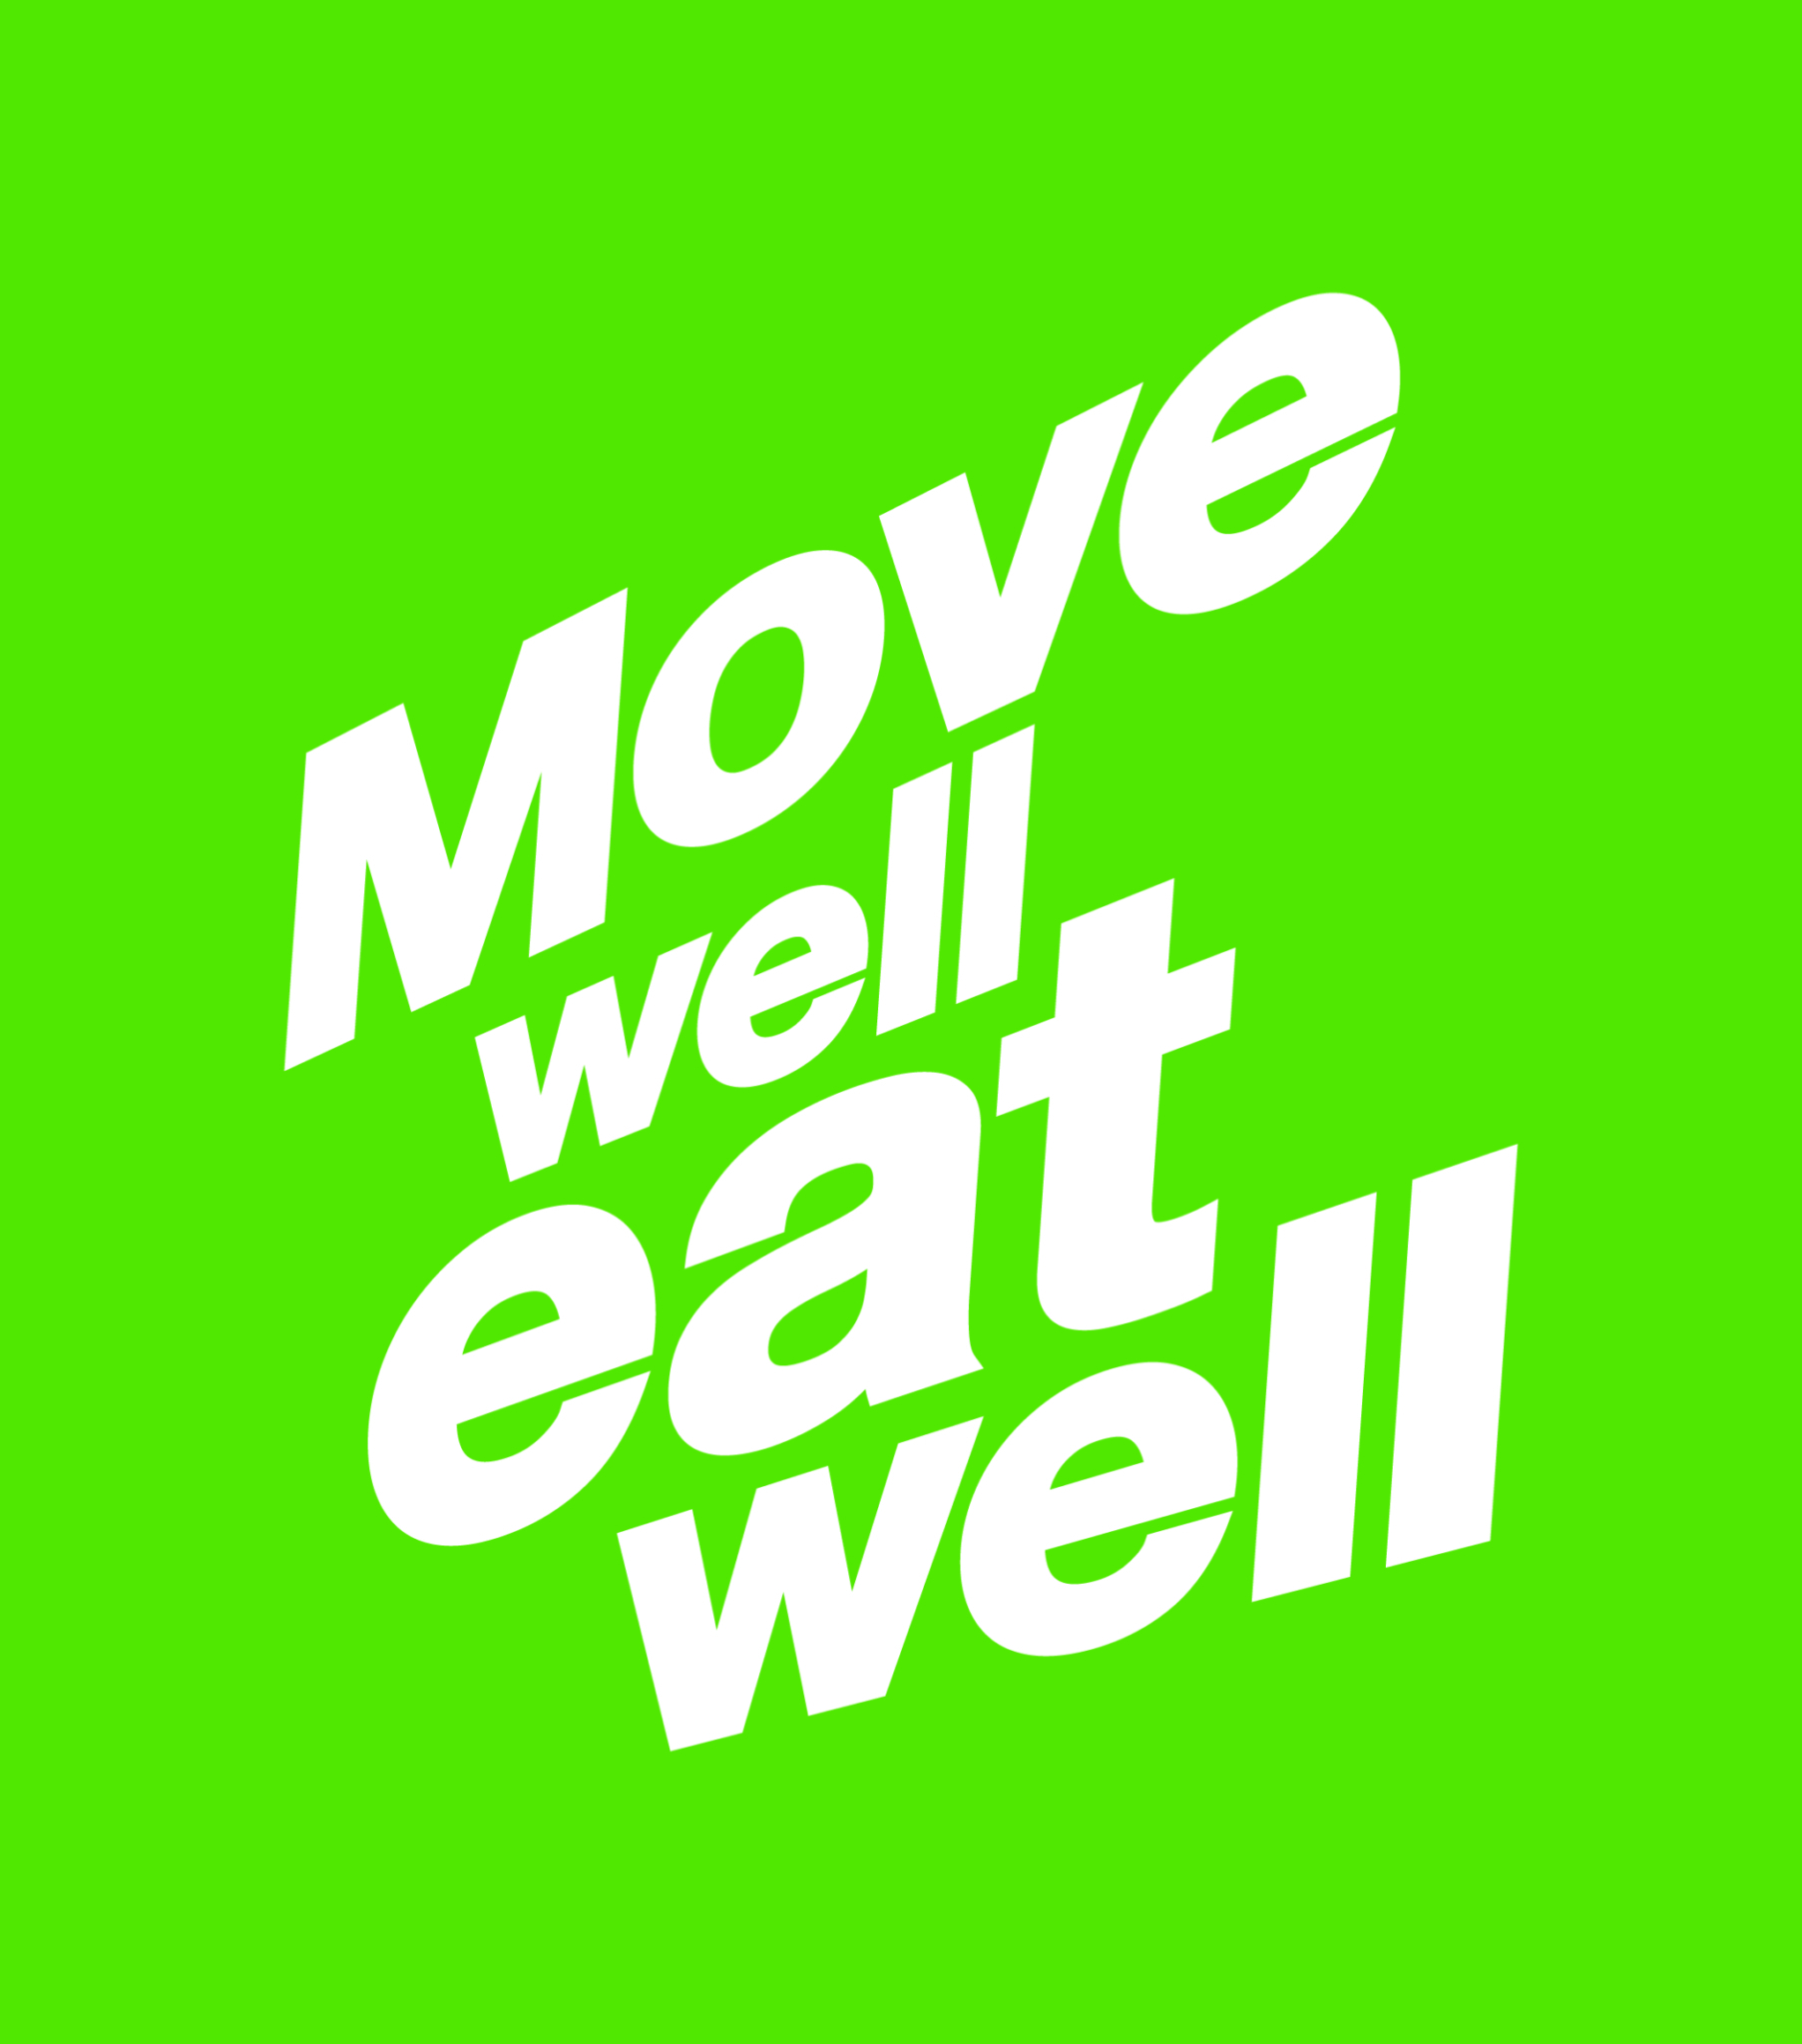 Move Well Eat Well